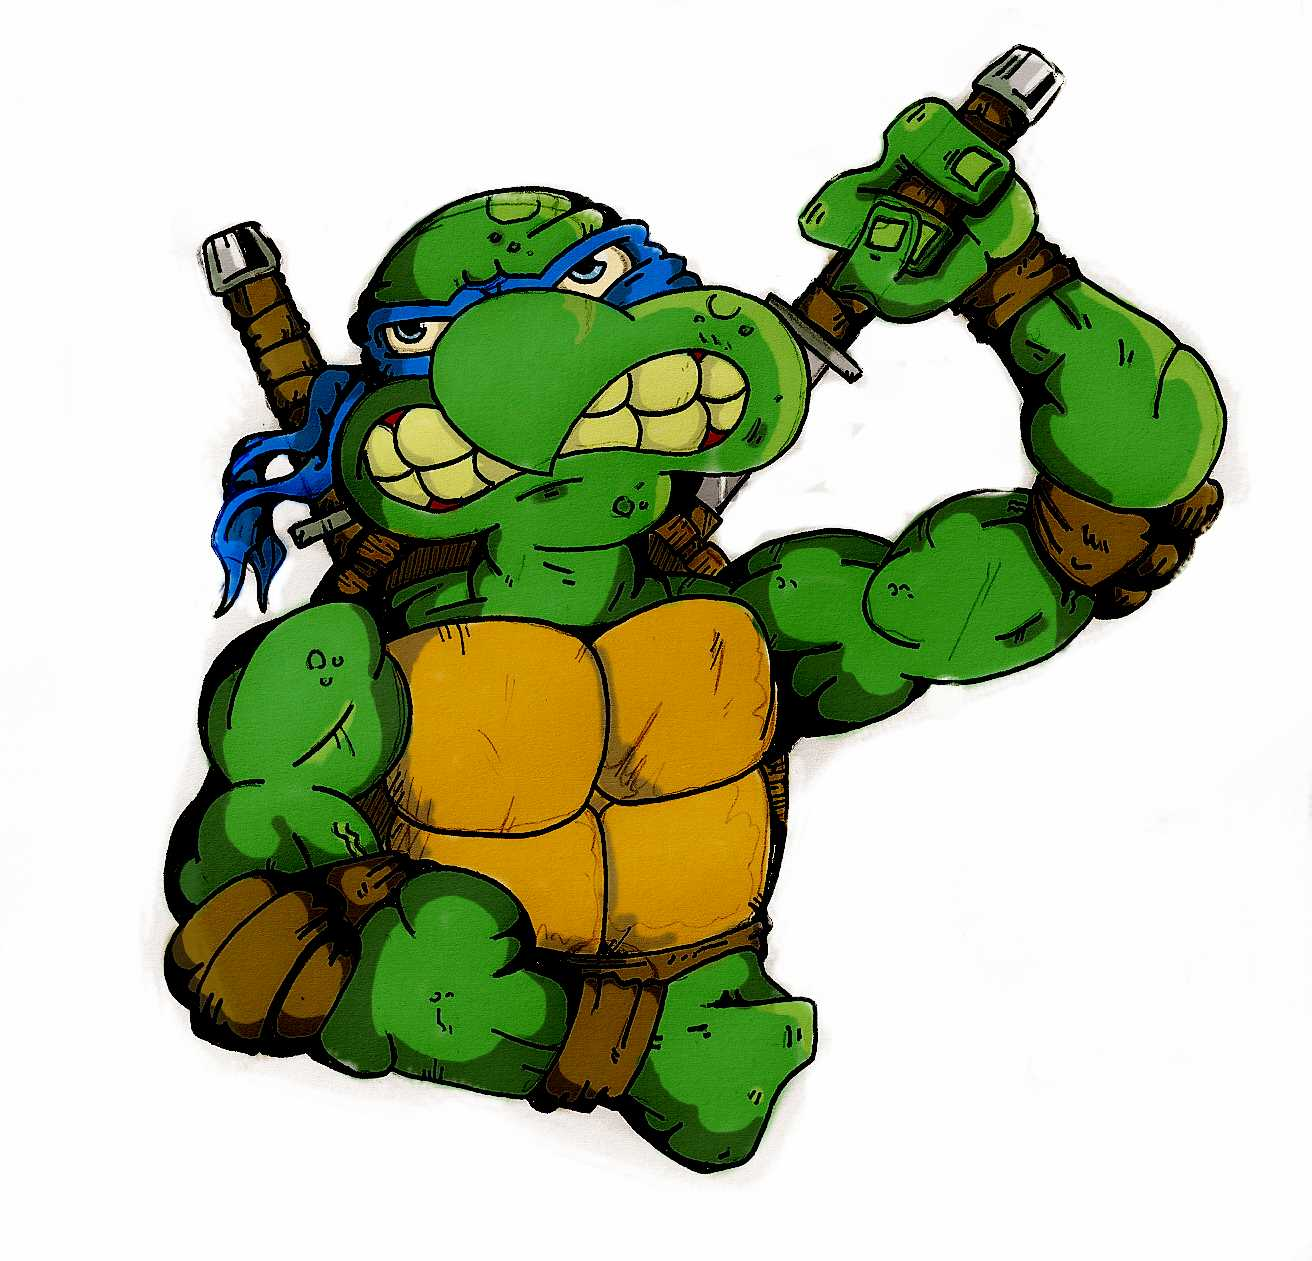 Leonardo Turtle http://www.tfw2005.com/boards/transformers-fan-art/453938-teenage-mutant-ninja-turtles.html